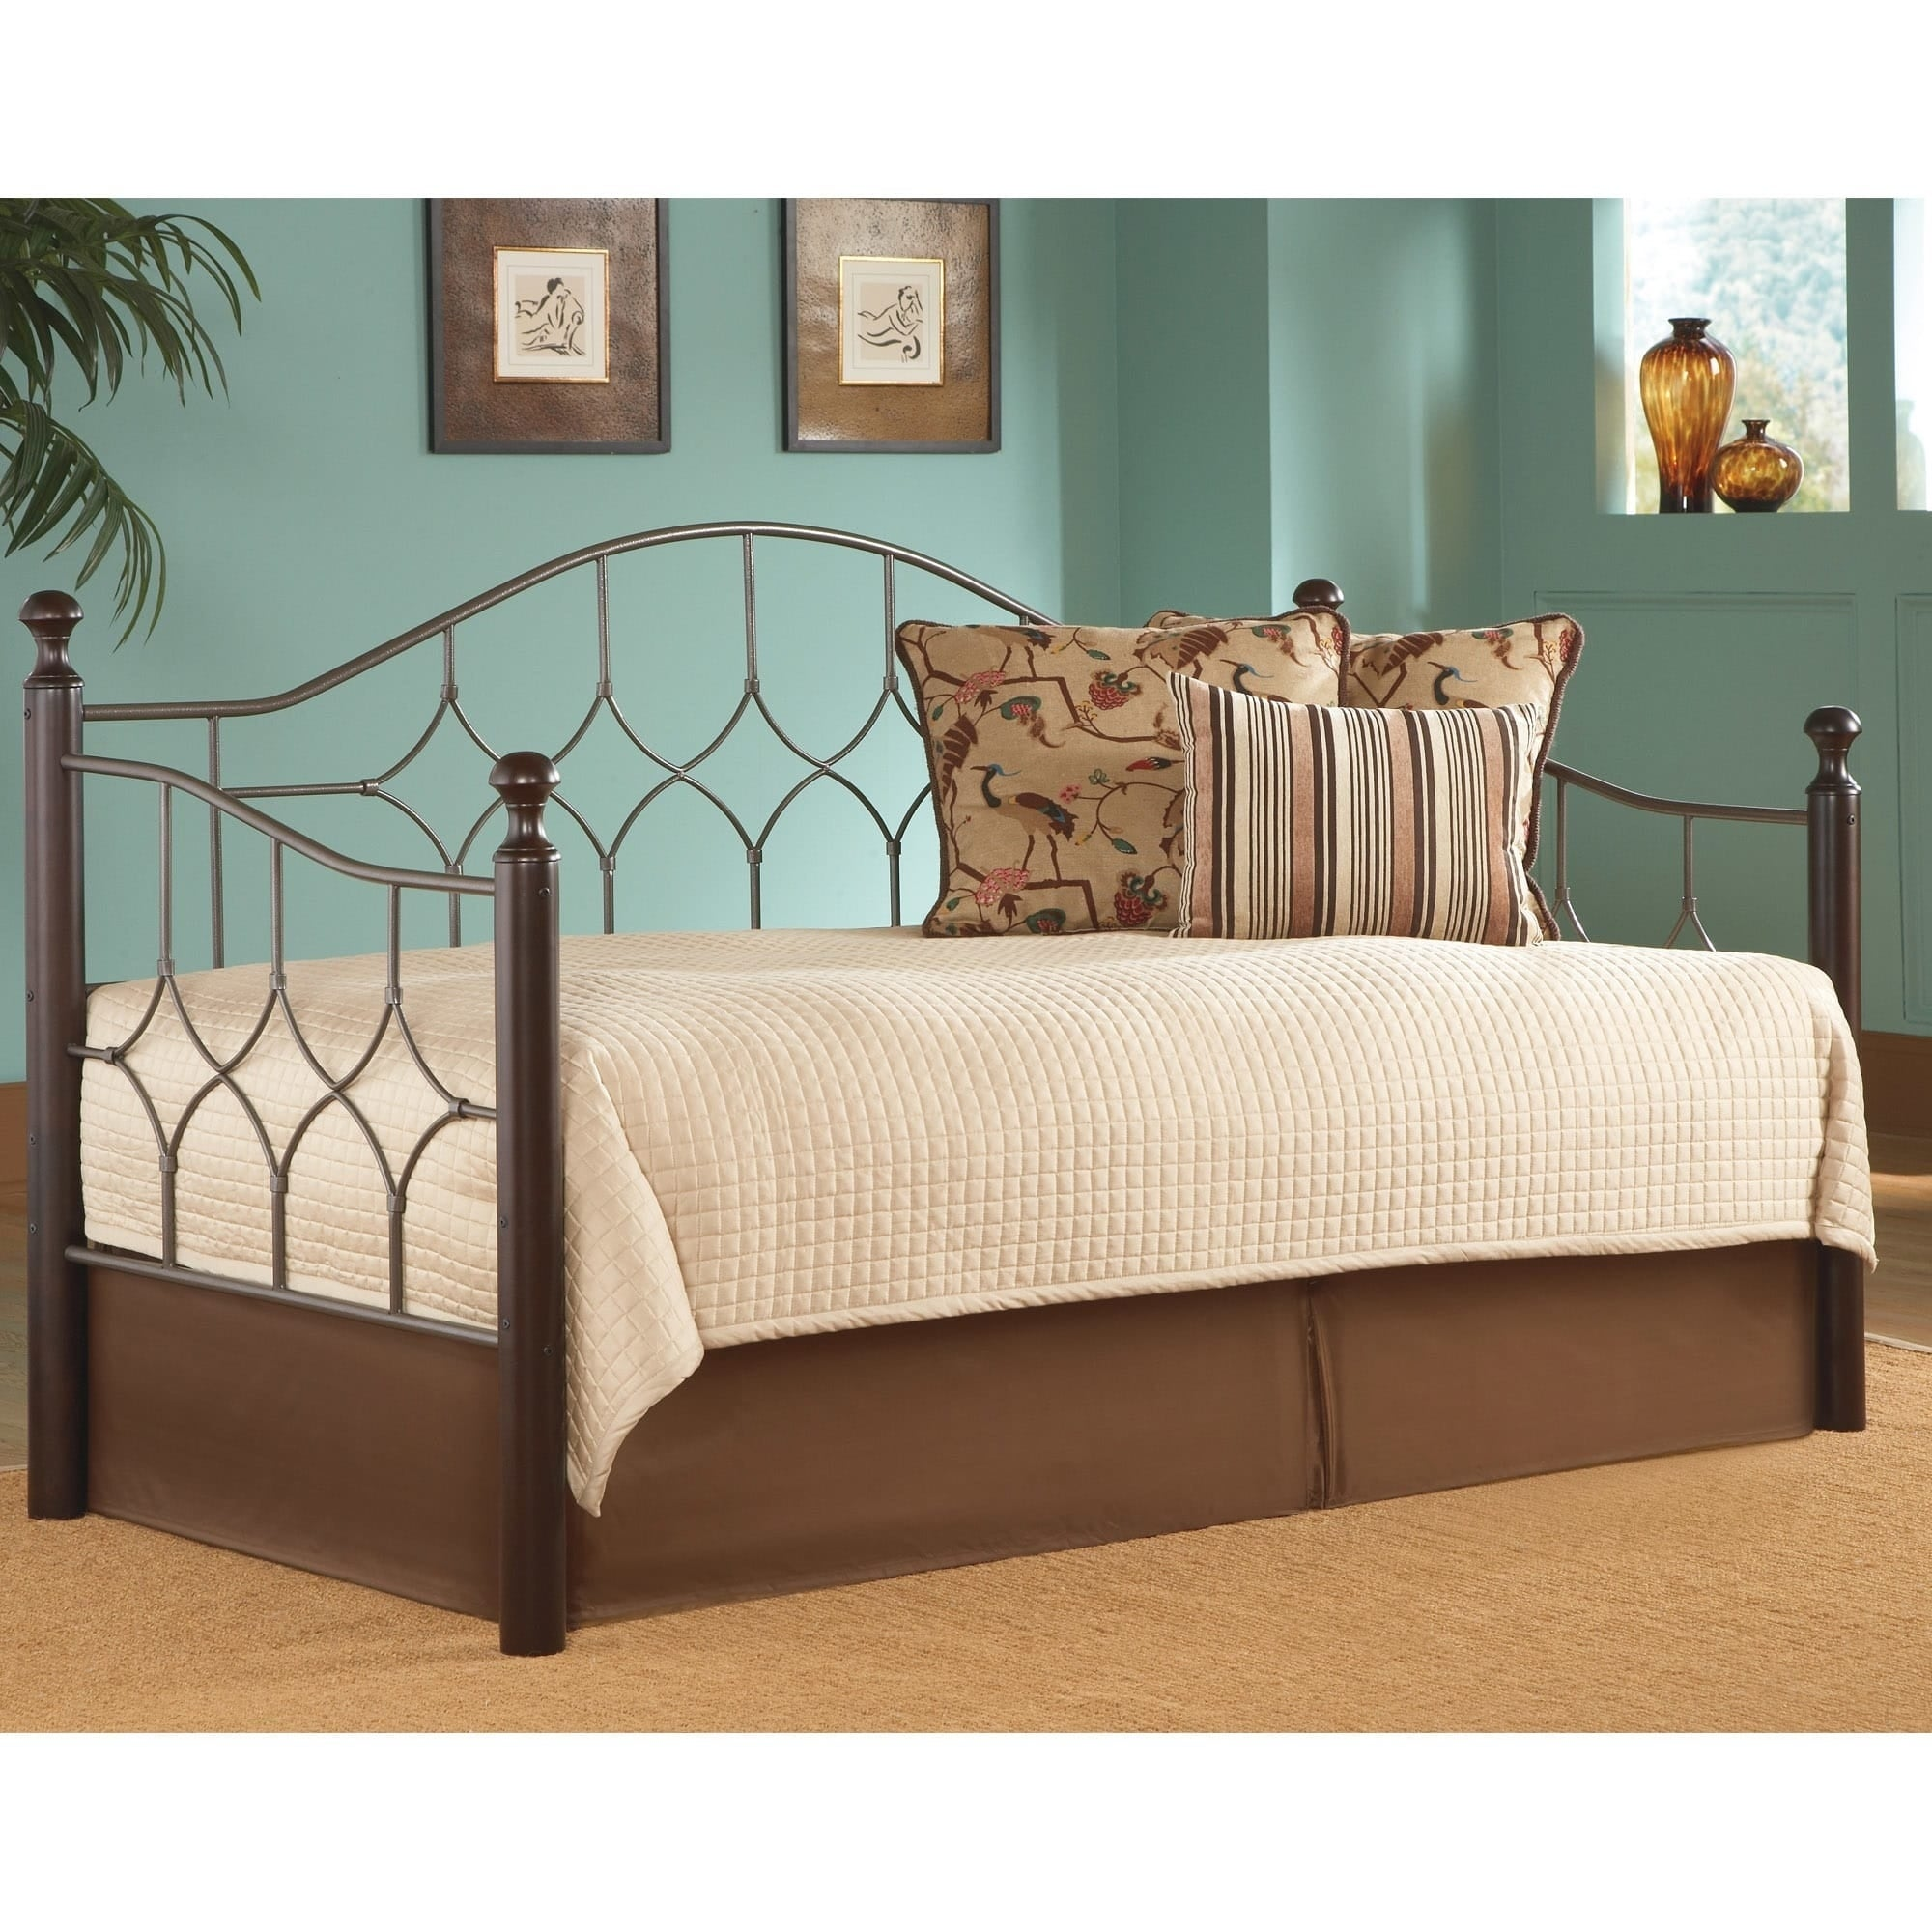 Leggett & Platt Bianca Daybed w/ Euro Deck and Pop-Up Trundle